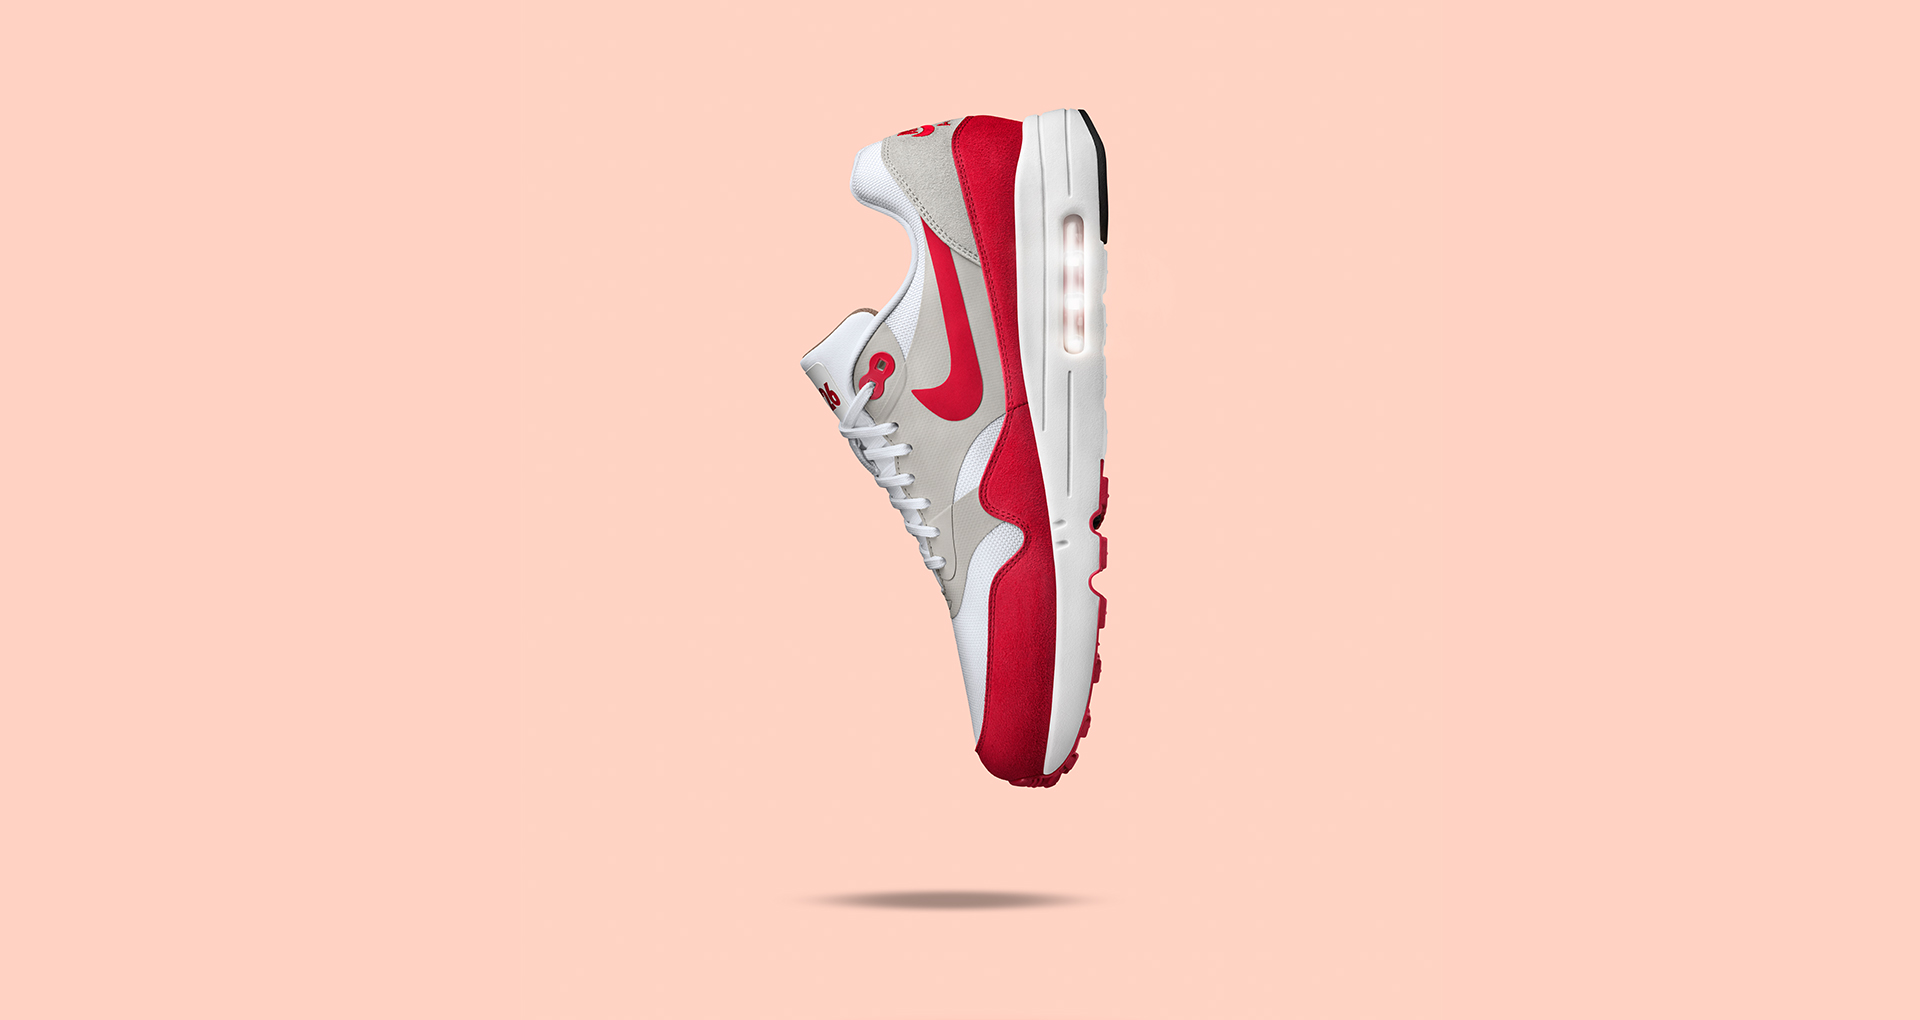 The Air Max 1 Ultra 2.0 LE, an Update to the Original, Gets